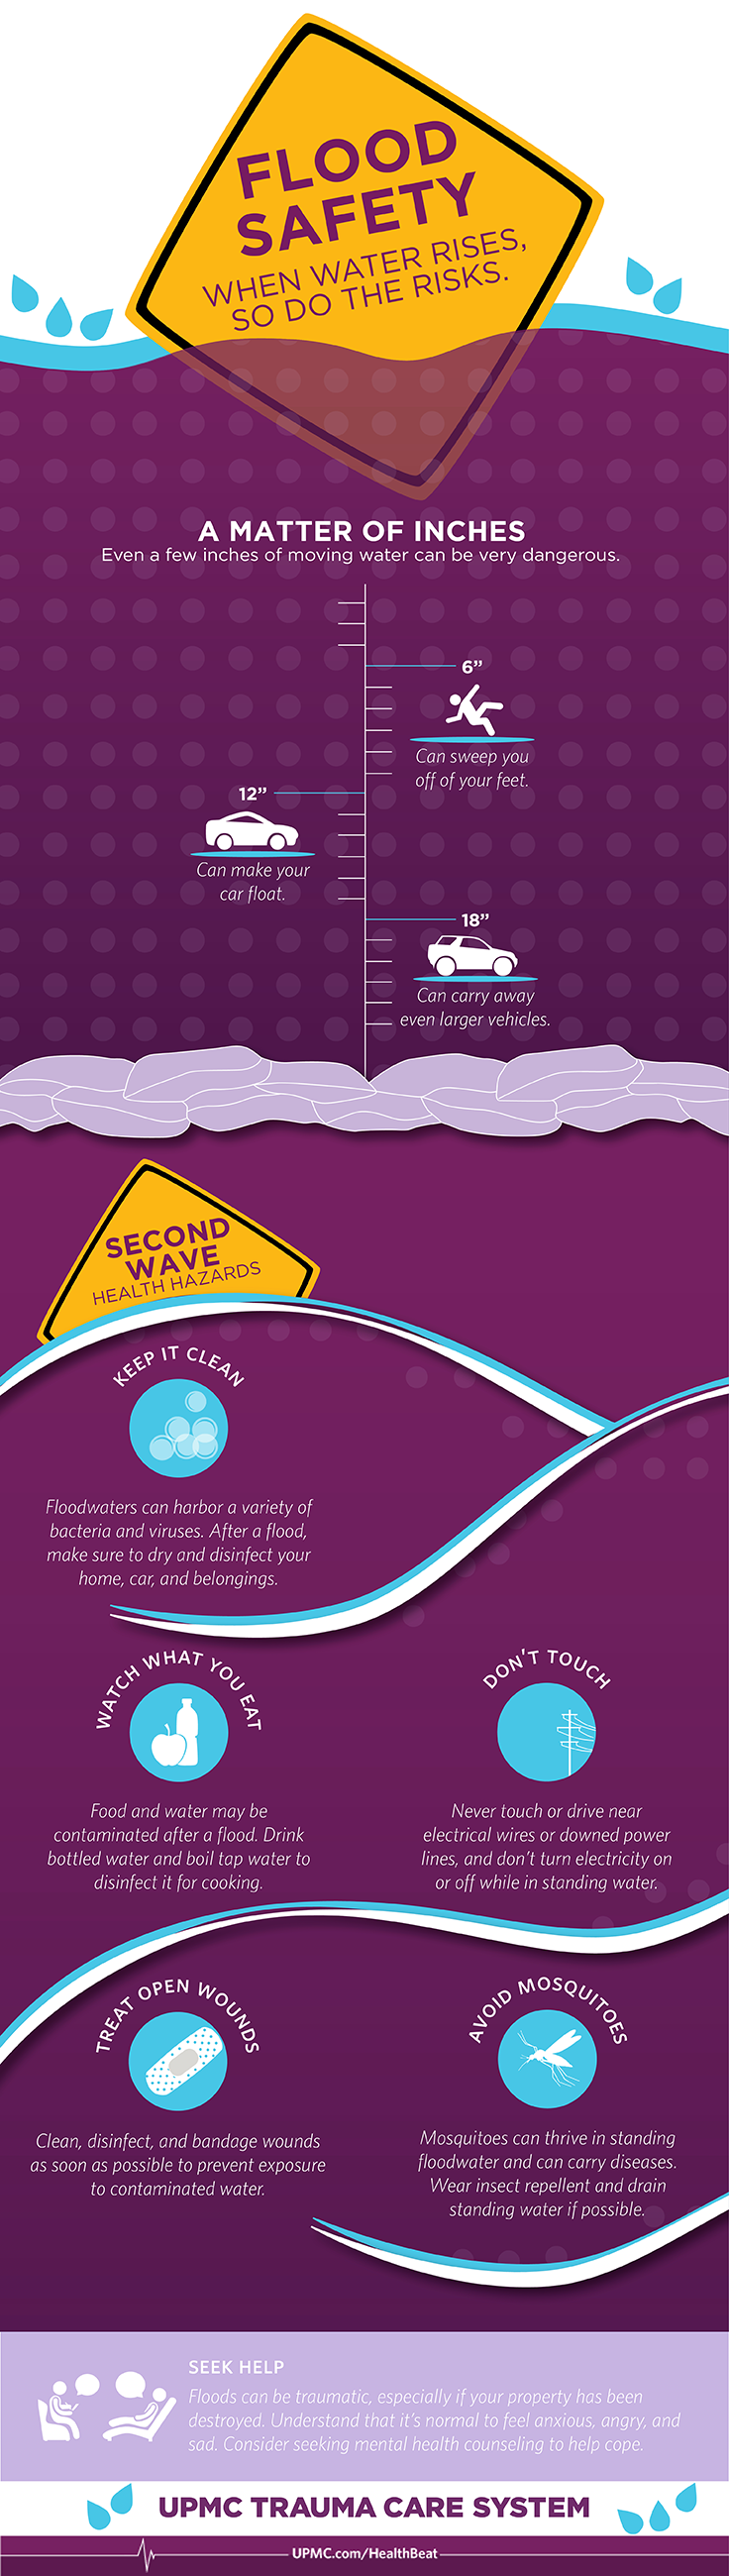 Learn about flood safety and how you can keep your family safe.